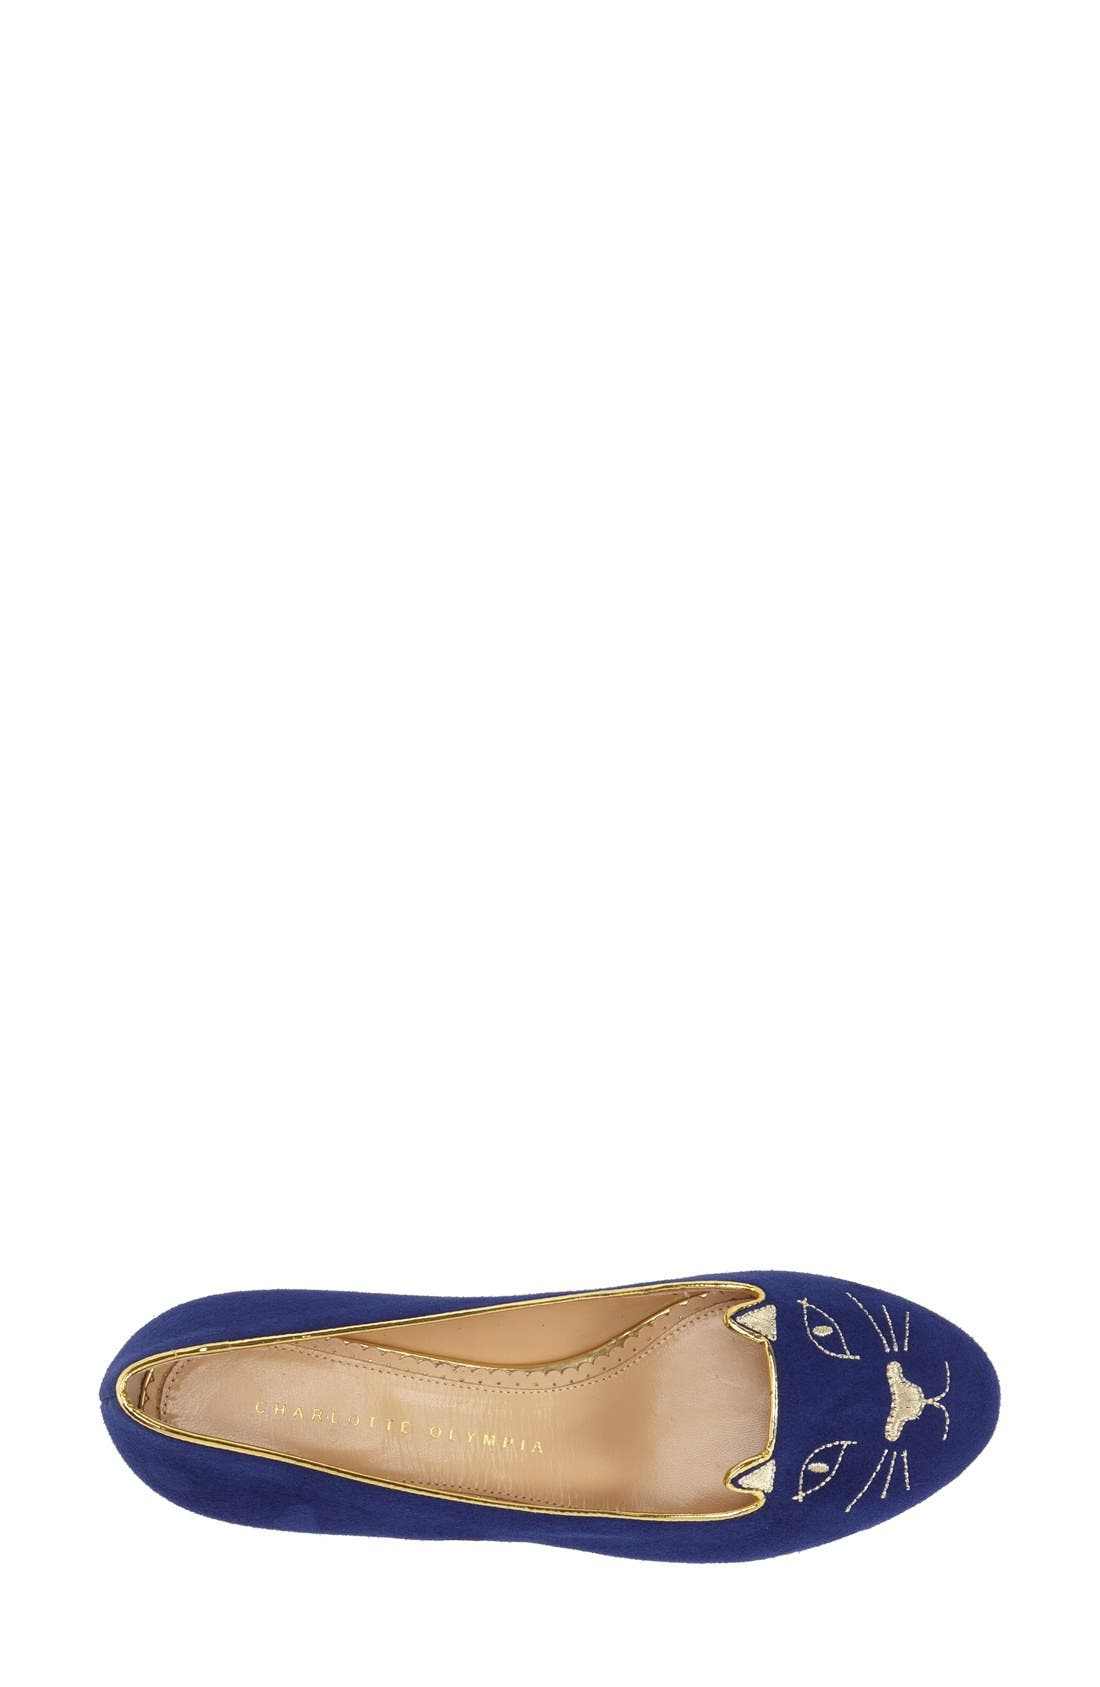 Alternate Image 4  - Charlotte Olympia 'Kitty' Suede Flat (Nordstrom Exclusive)